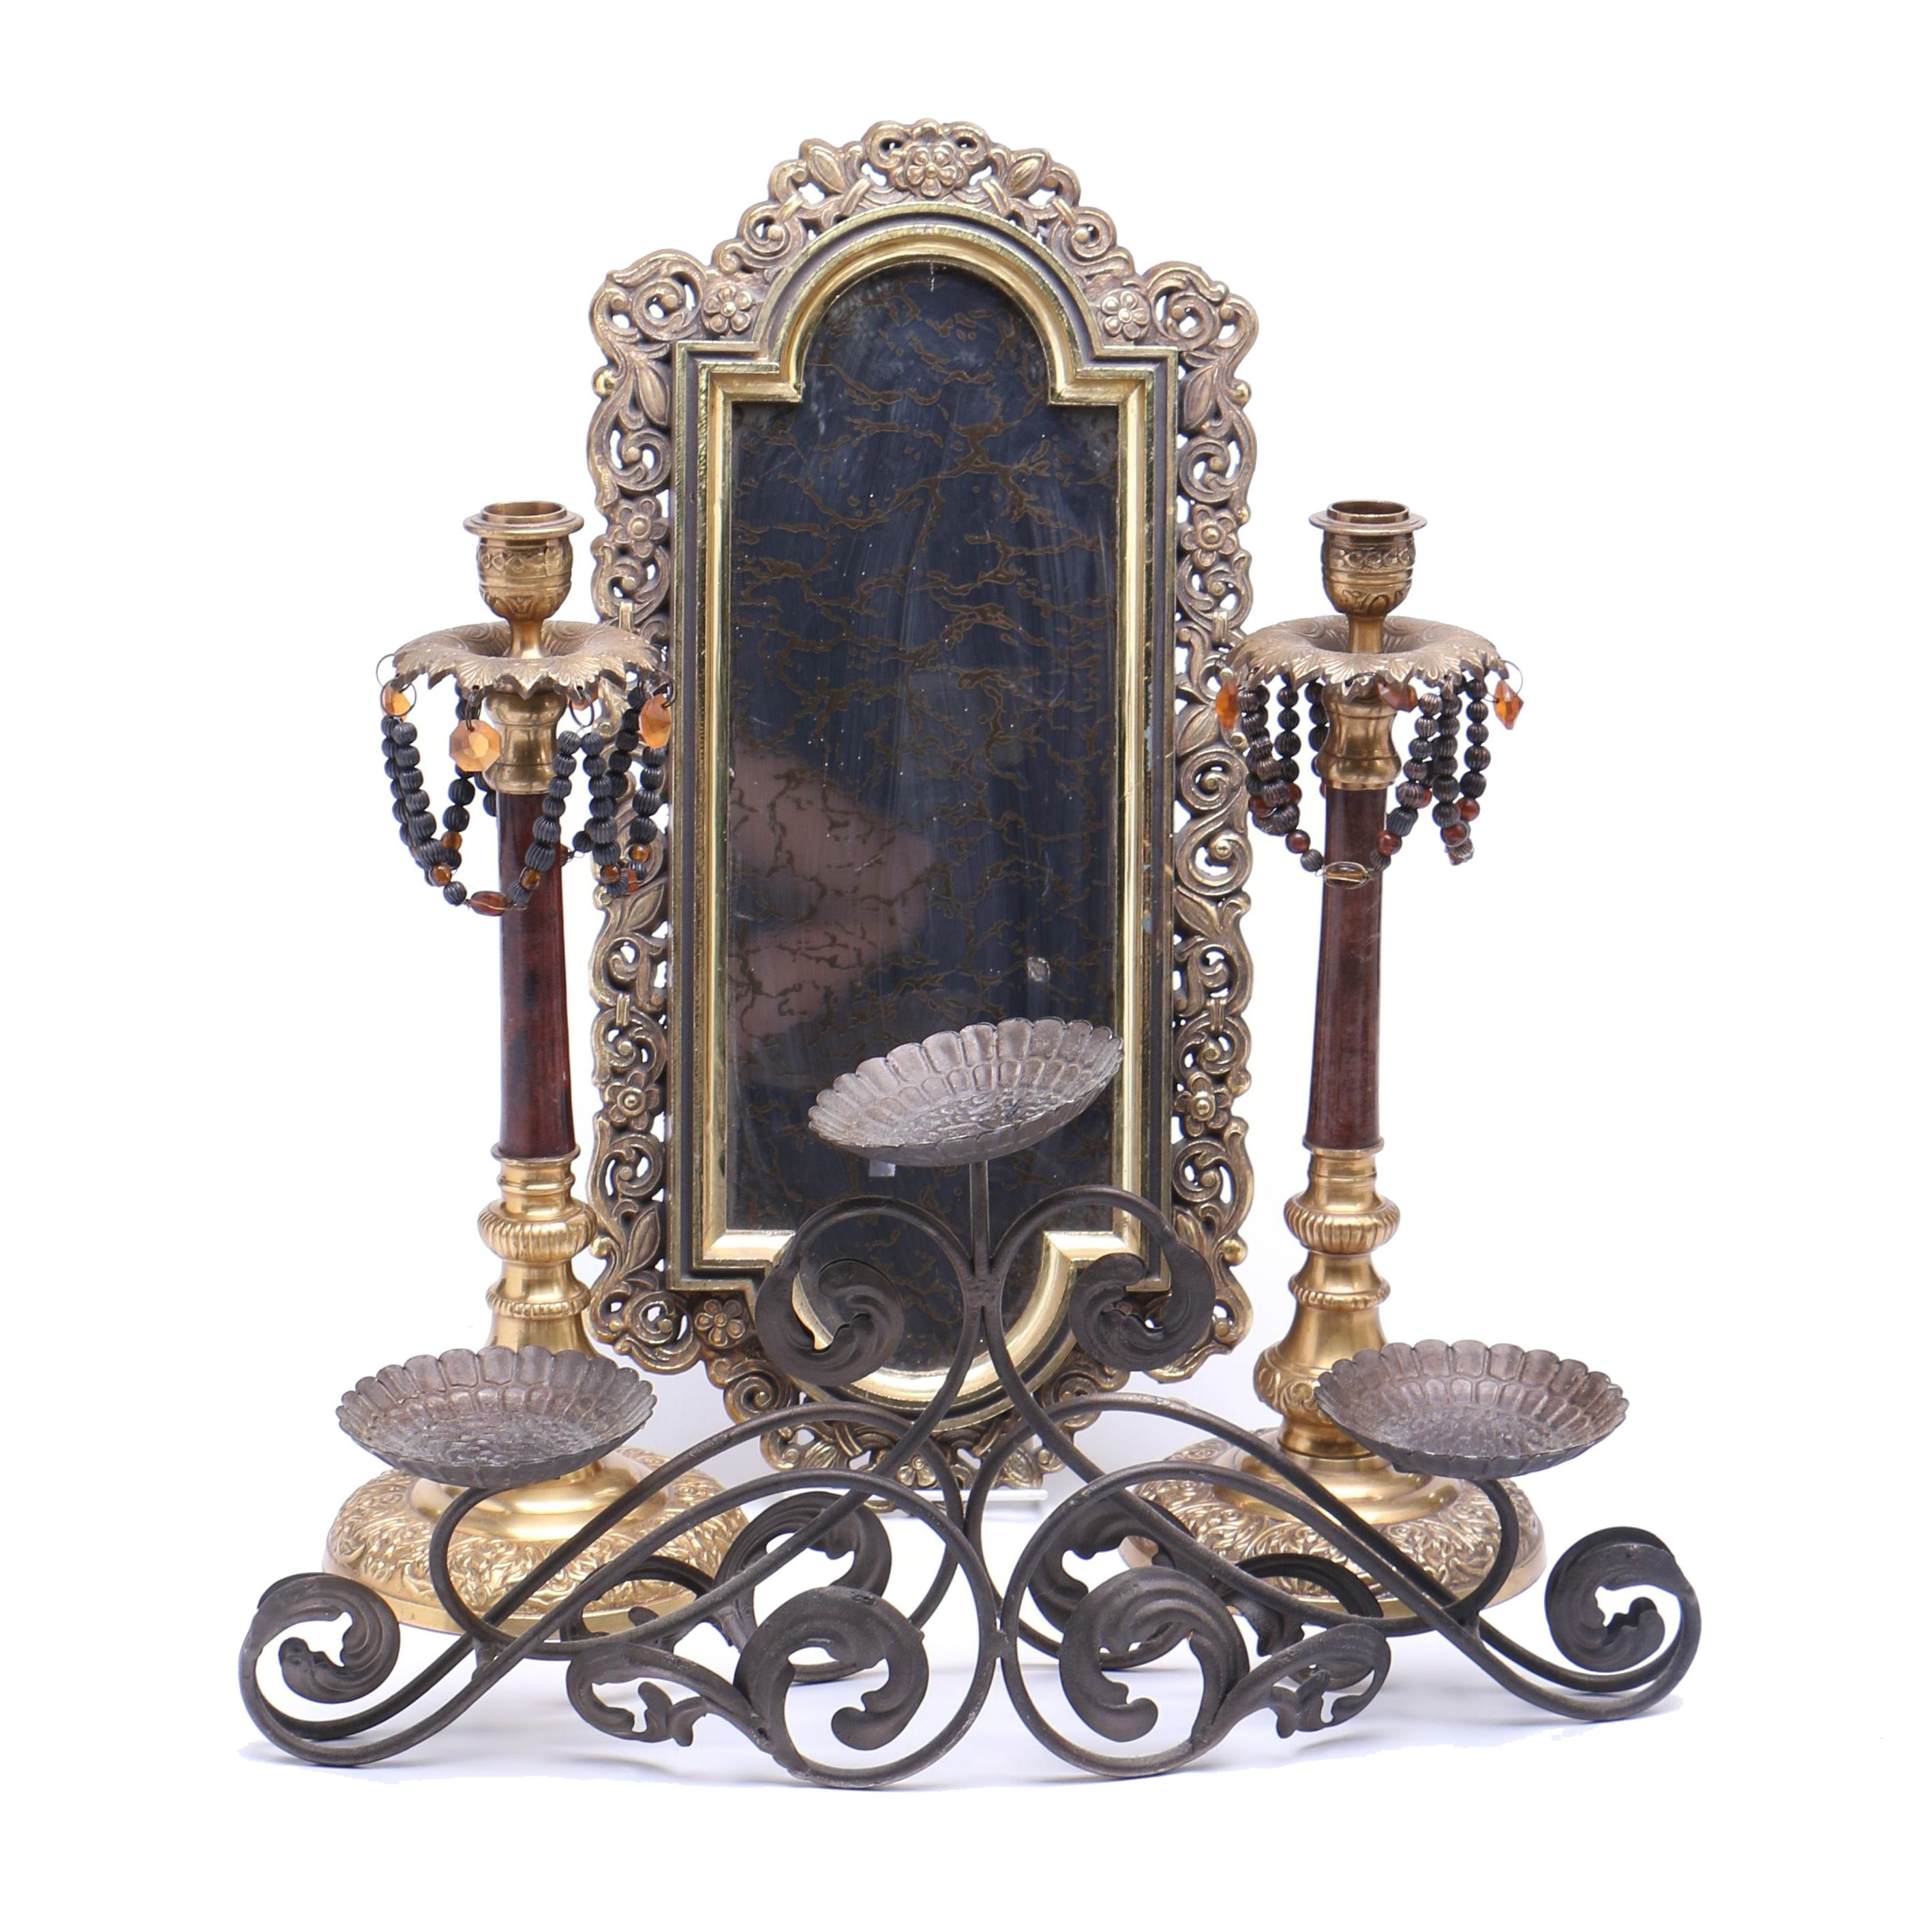 Ornate Brass Décor and Wrought Iron Candle Stand